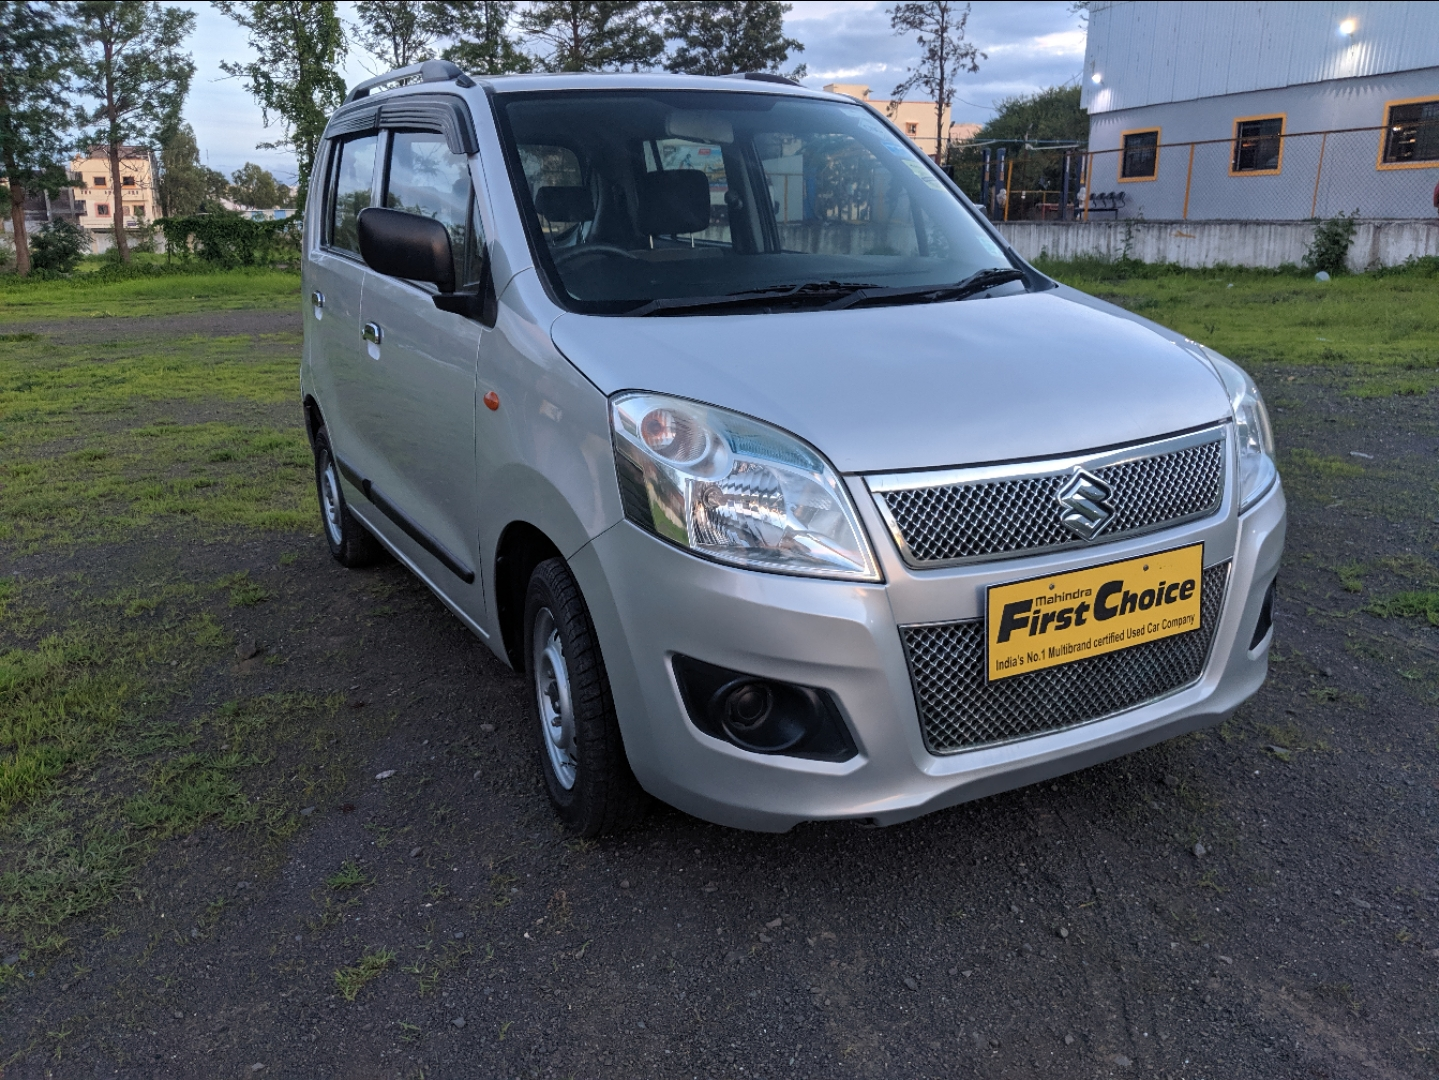 Used Maruti Suzuki in Pune - Mahindra First Choice